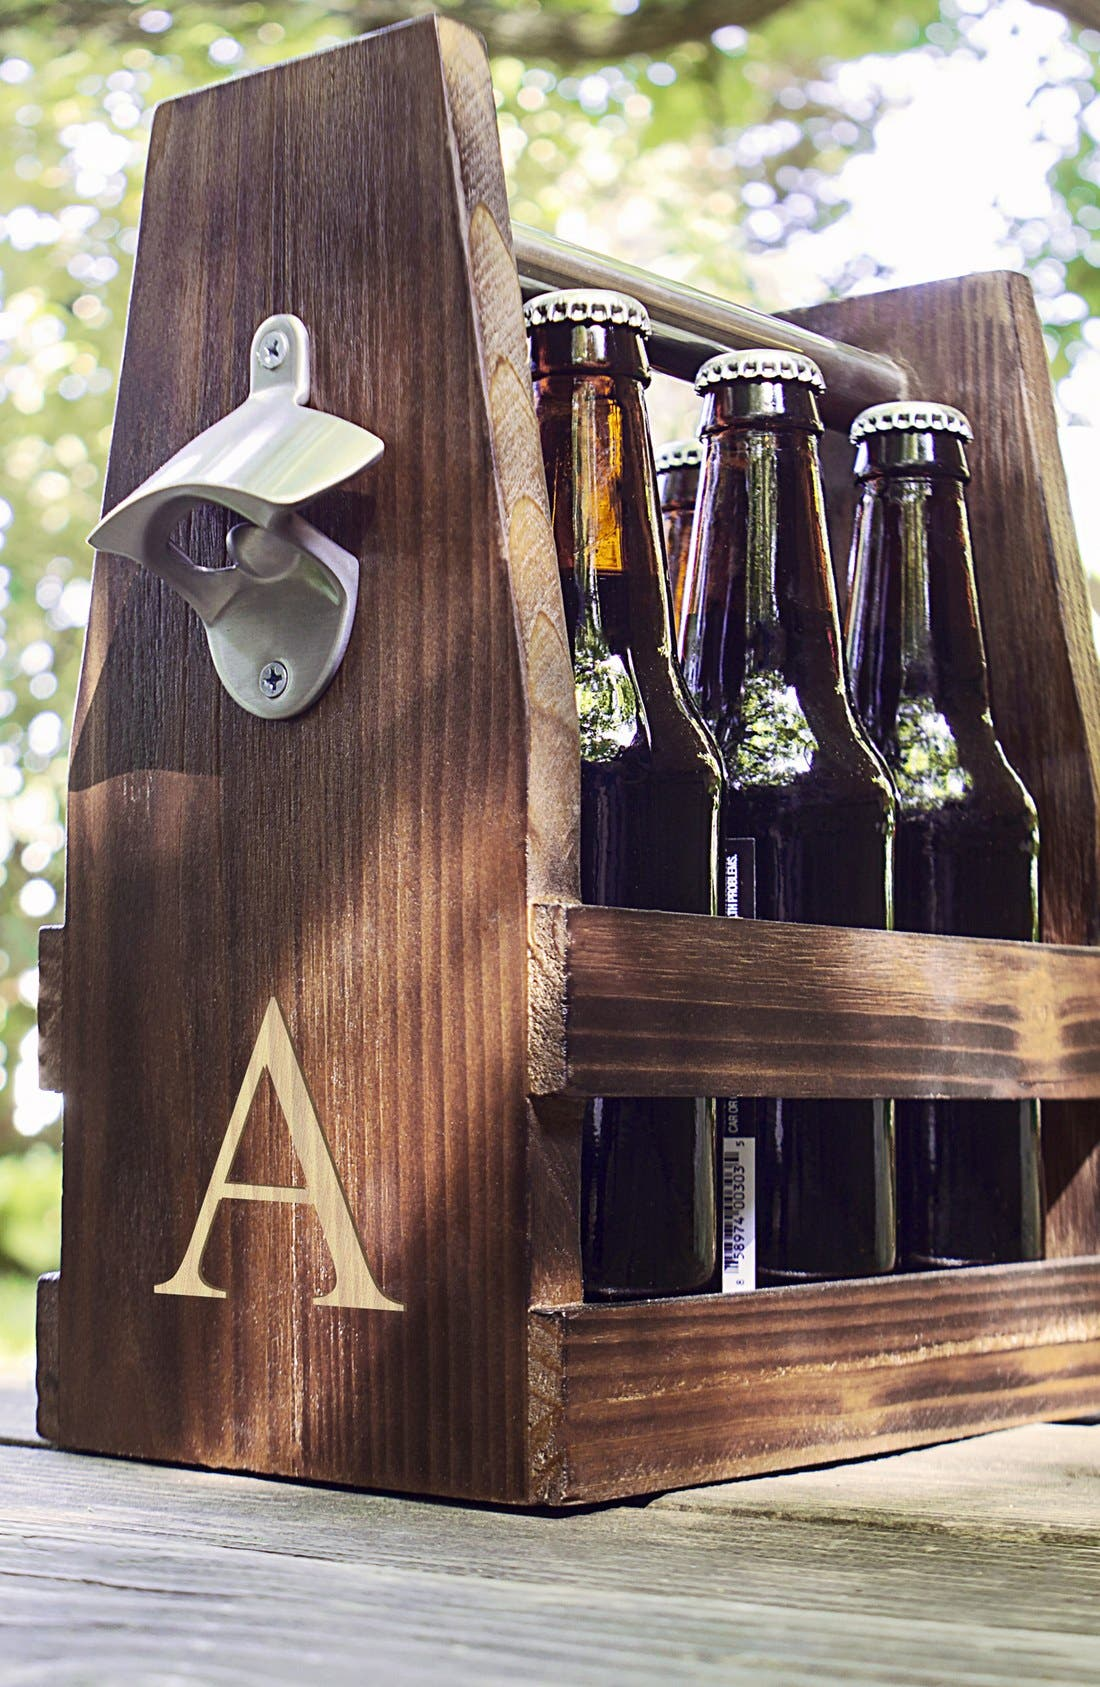 Alternate Image 1 Selected - Cathy's Concepts Monogram Craft Beer Carrier